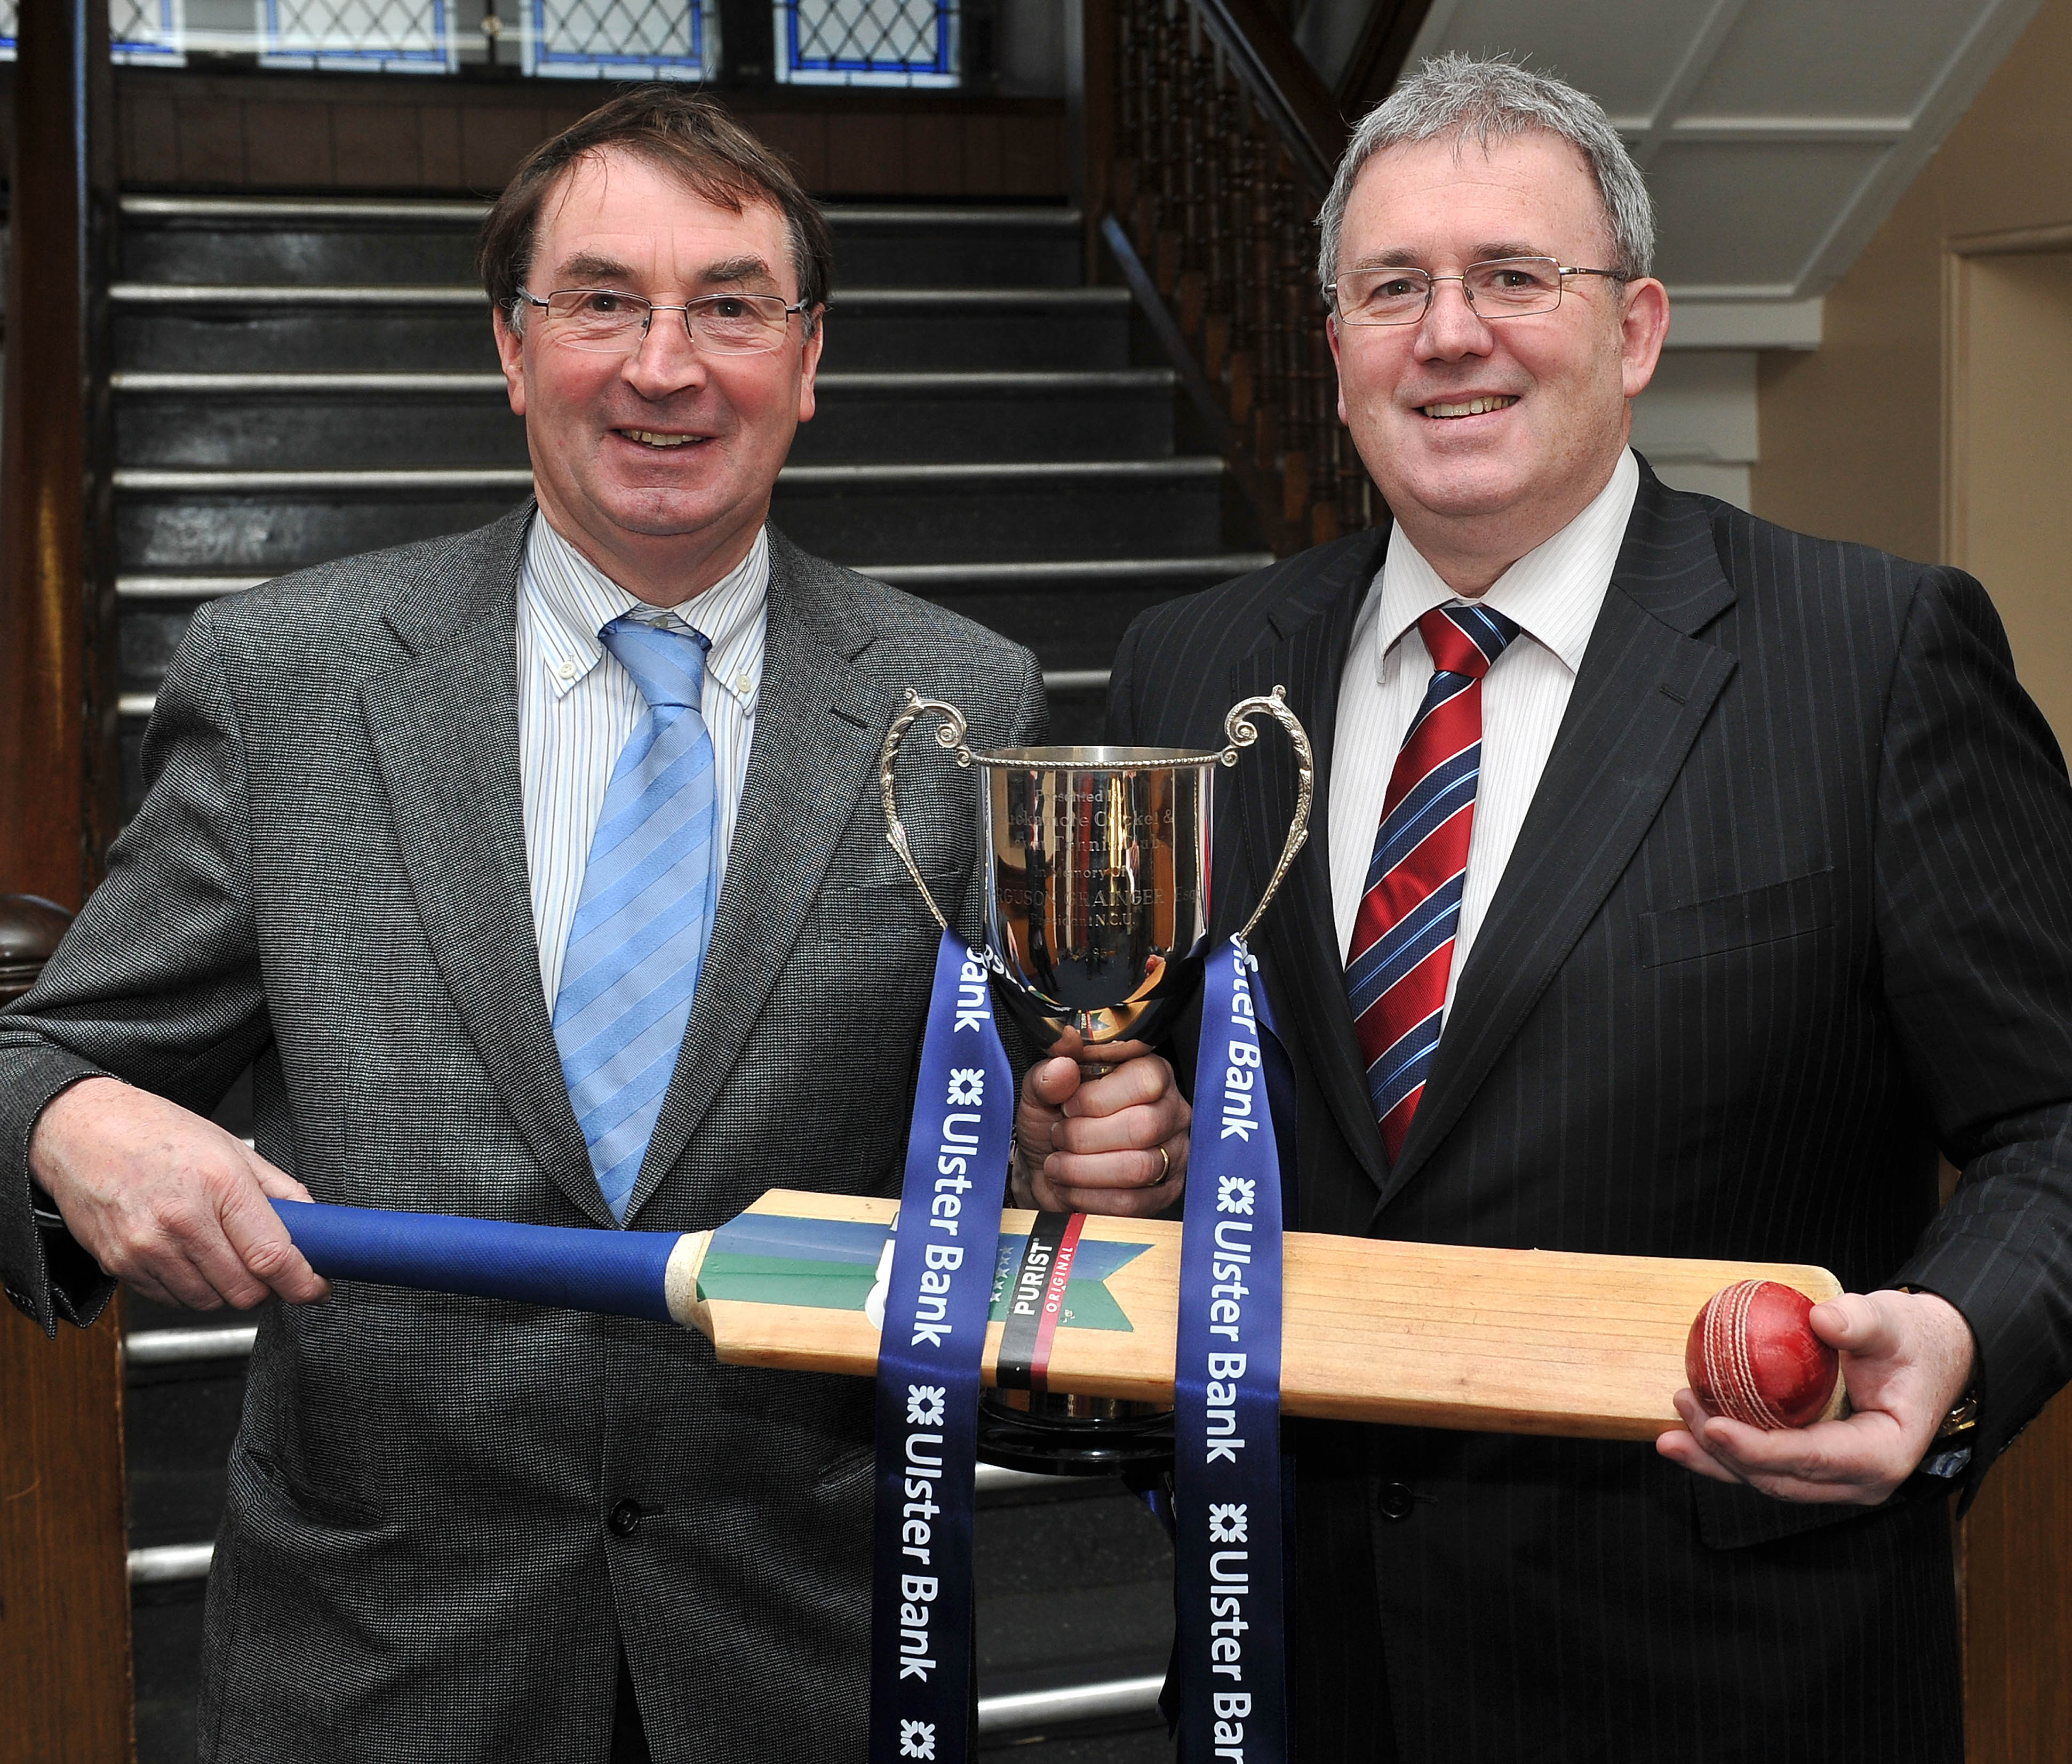 NCU President Chris Harte and Stephen Cruise from the Ulster Bank make the draw for this year's Schools Cup